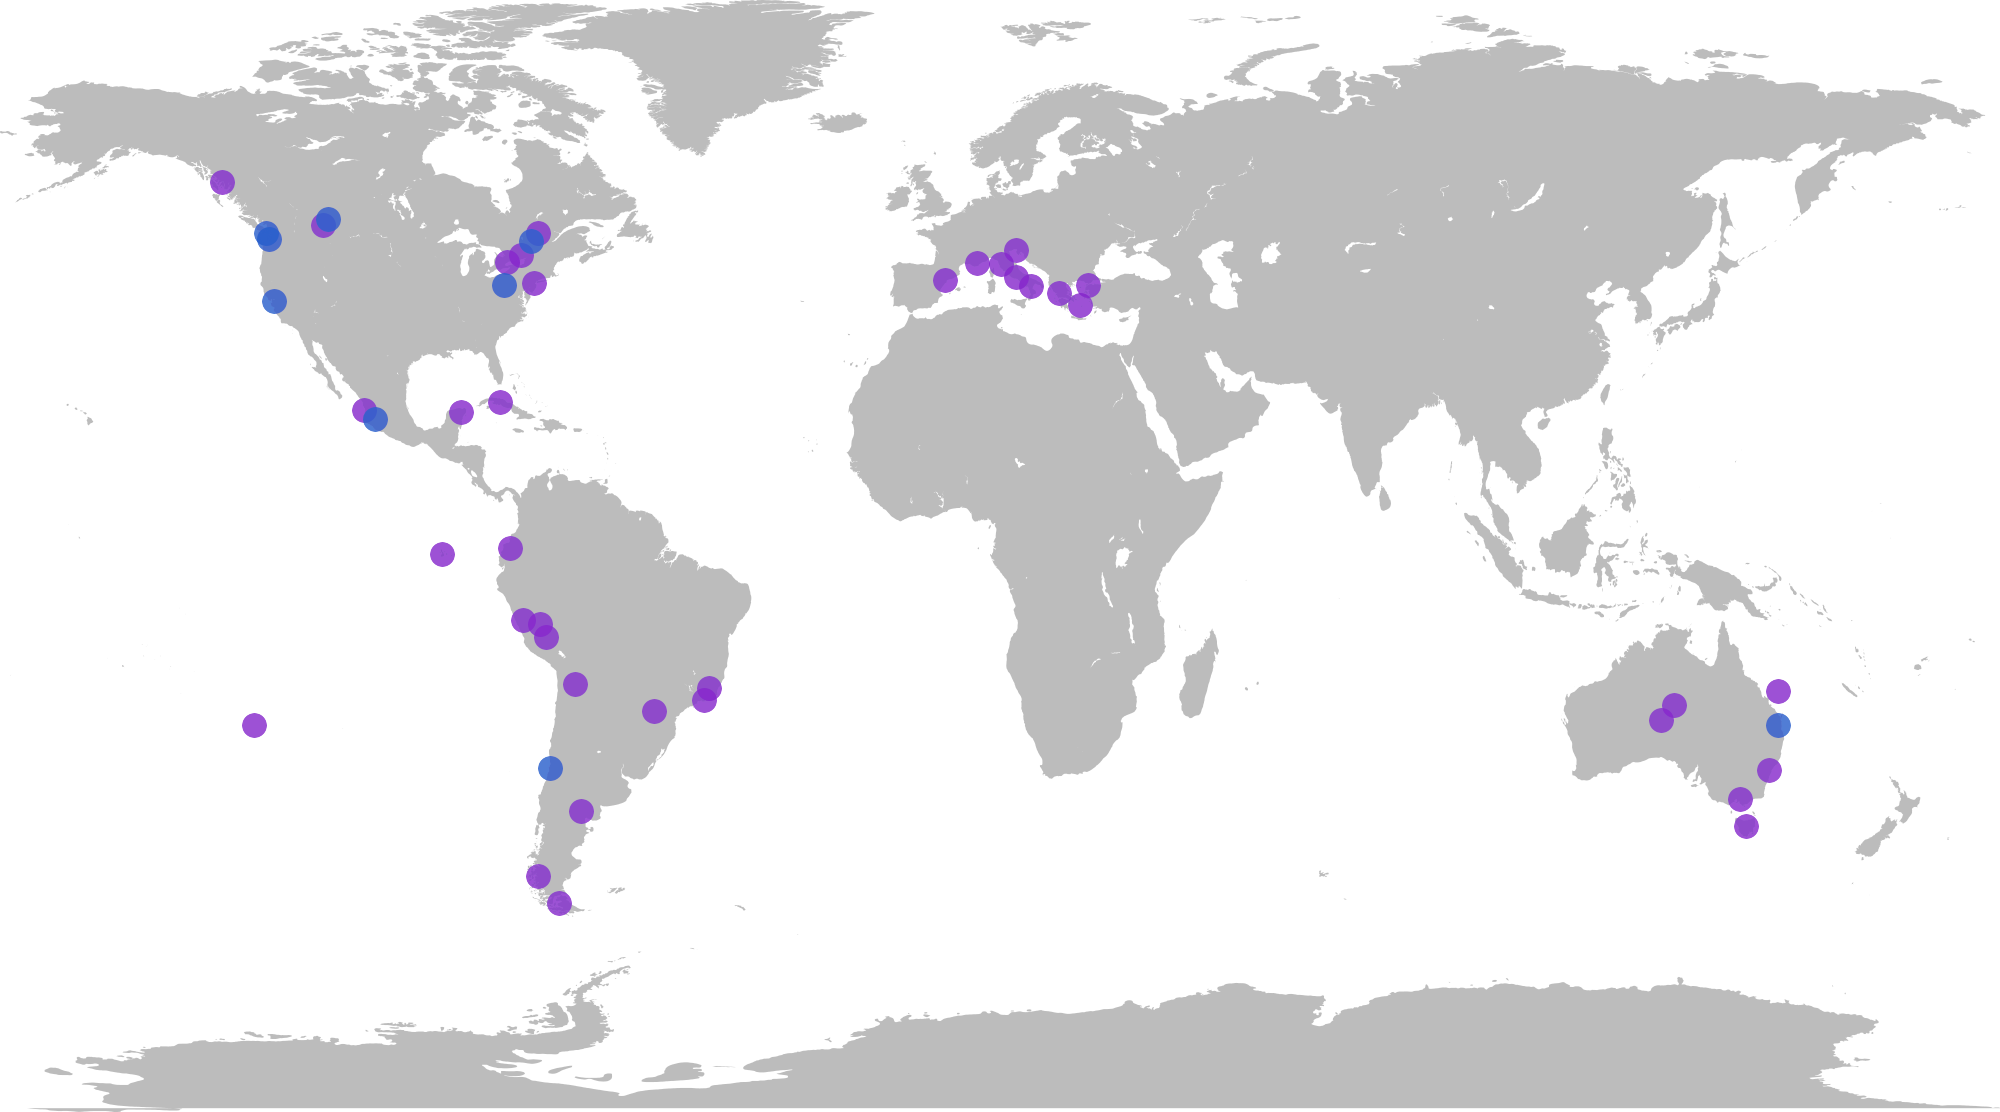 Places I have lived (blue) and travelled (purple).